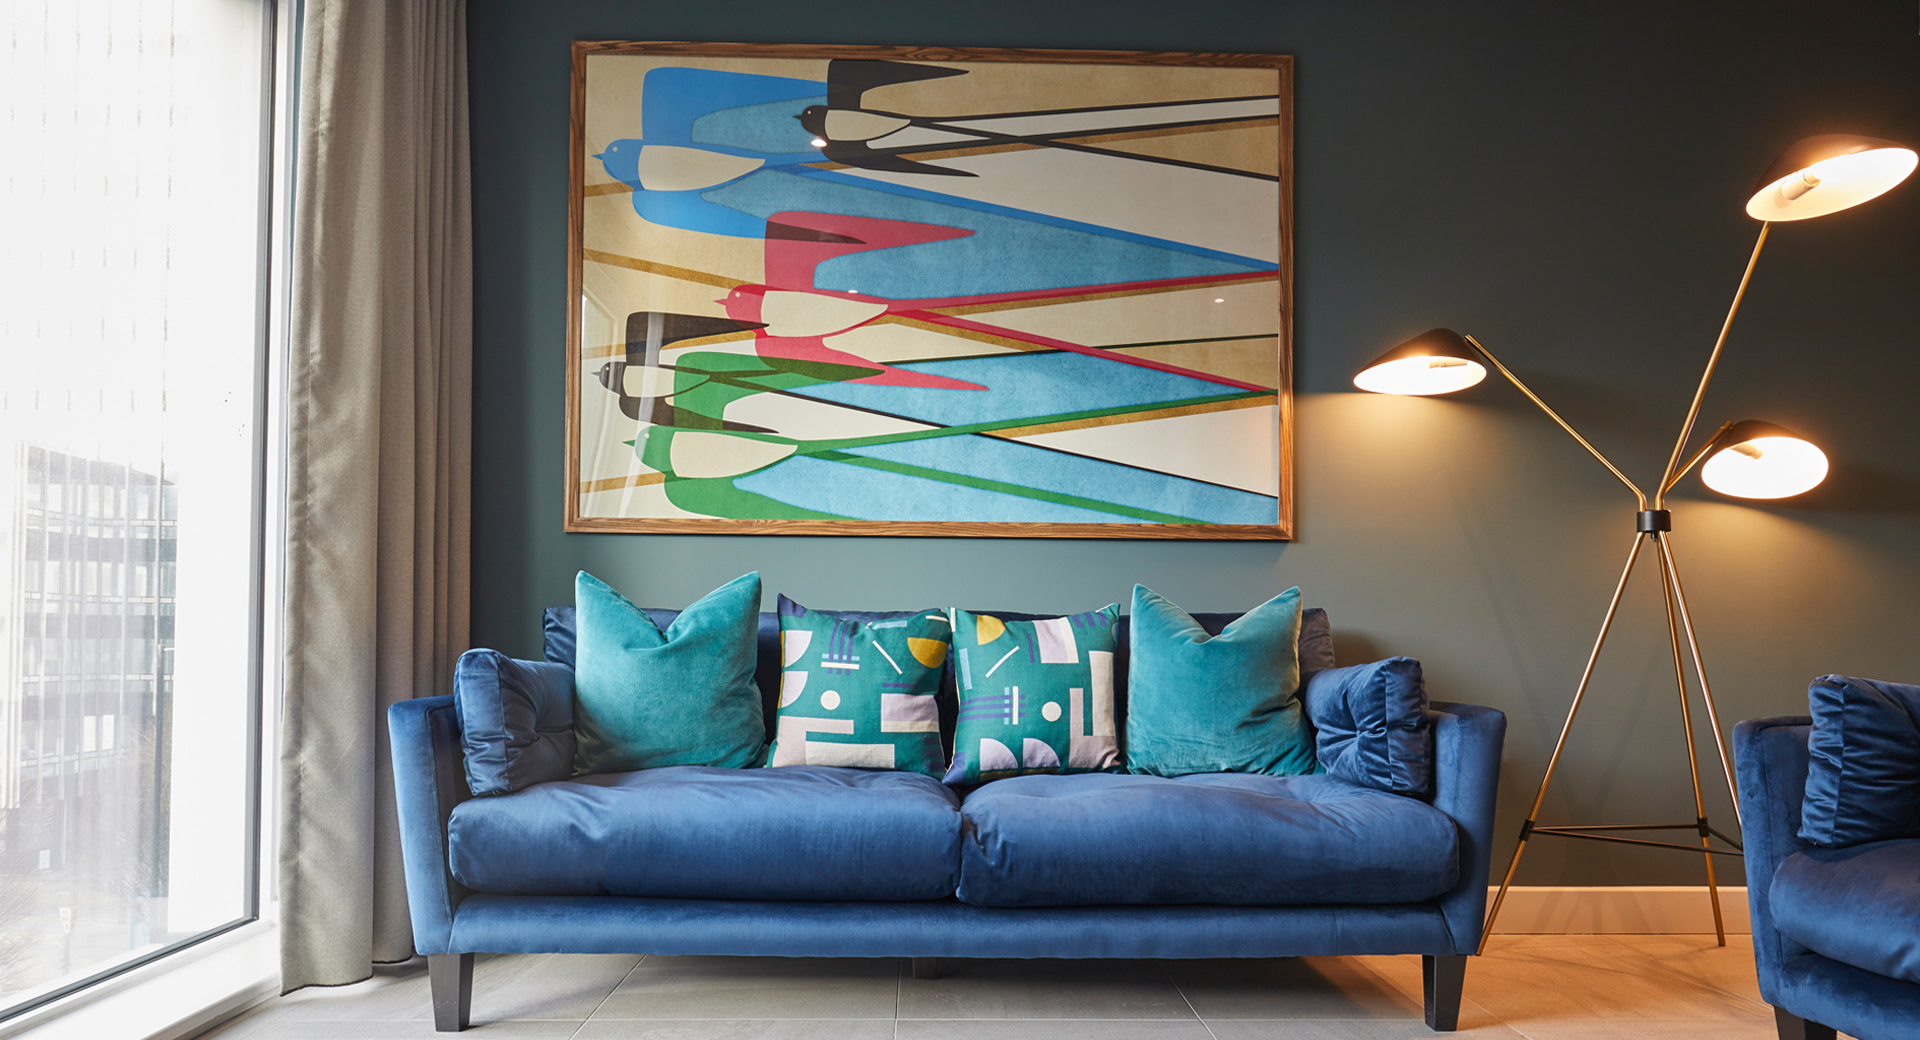 interior designed bespoke furniture and adam ellis artwork